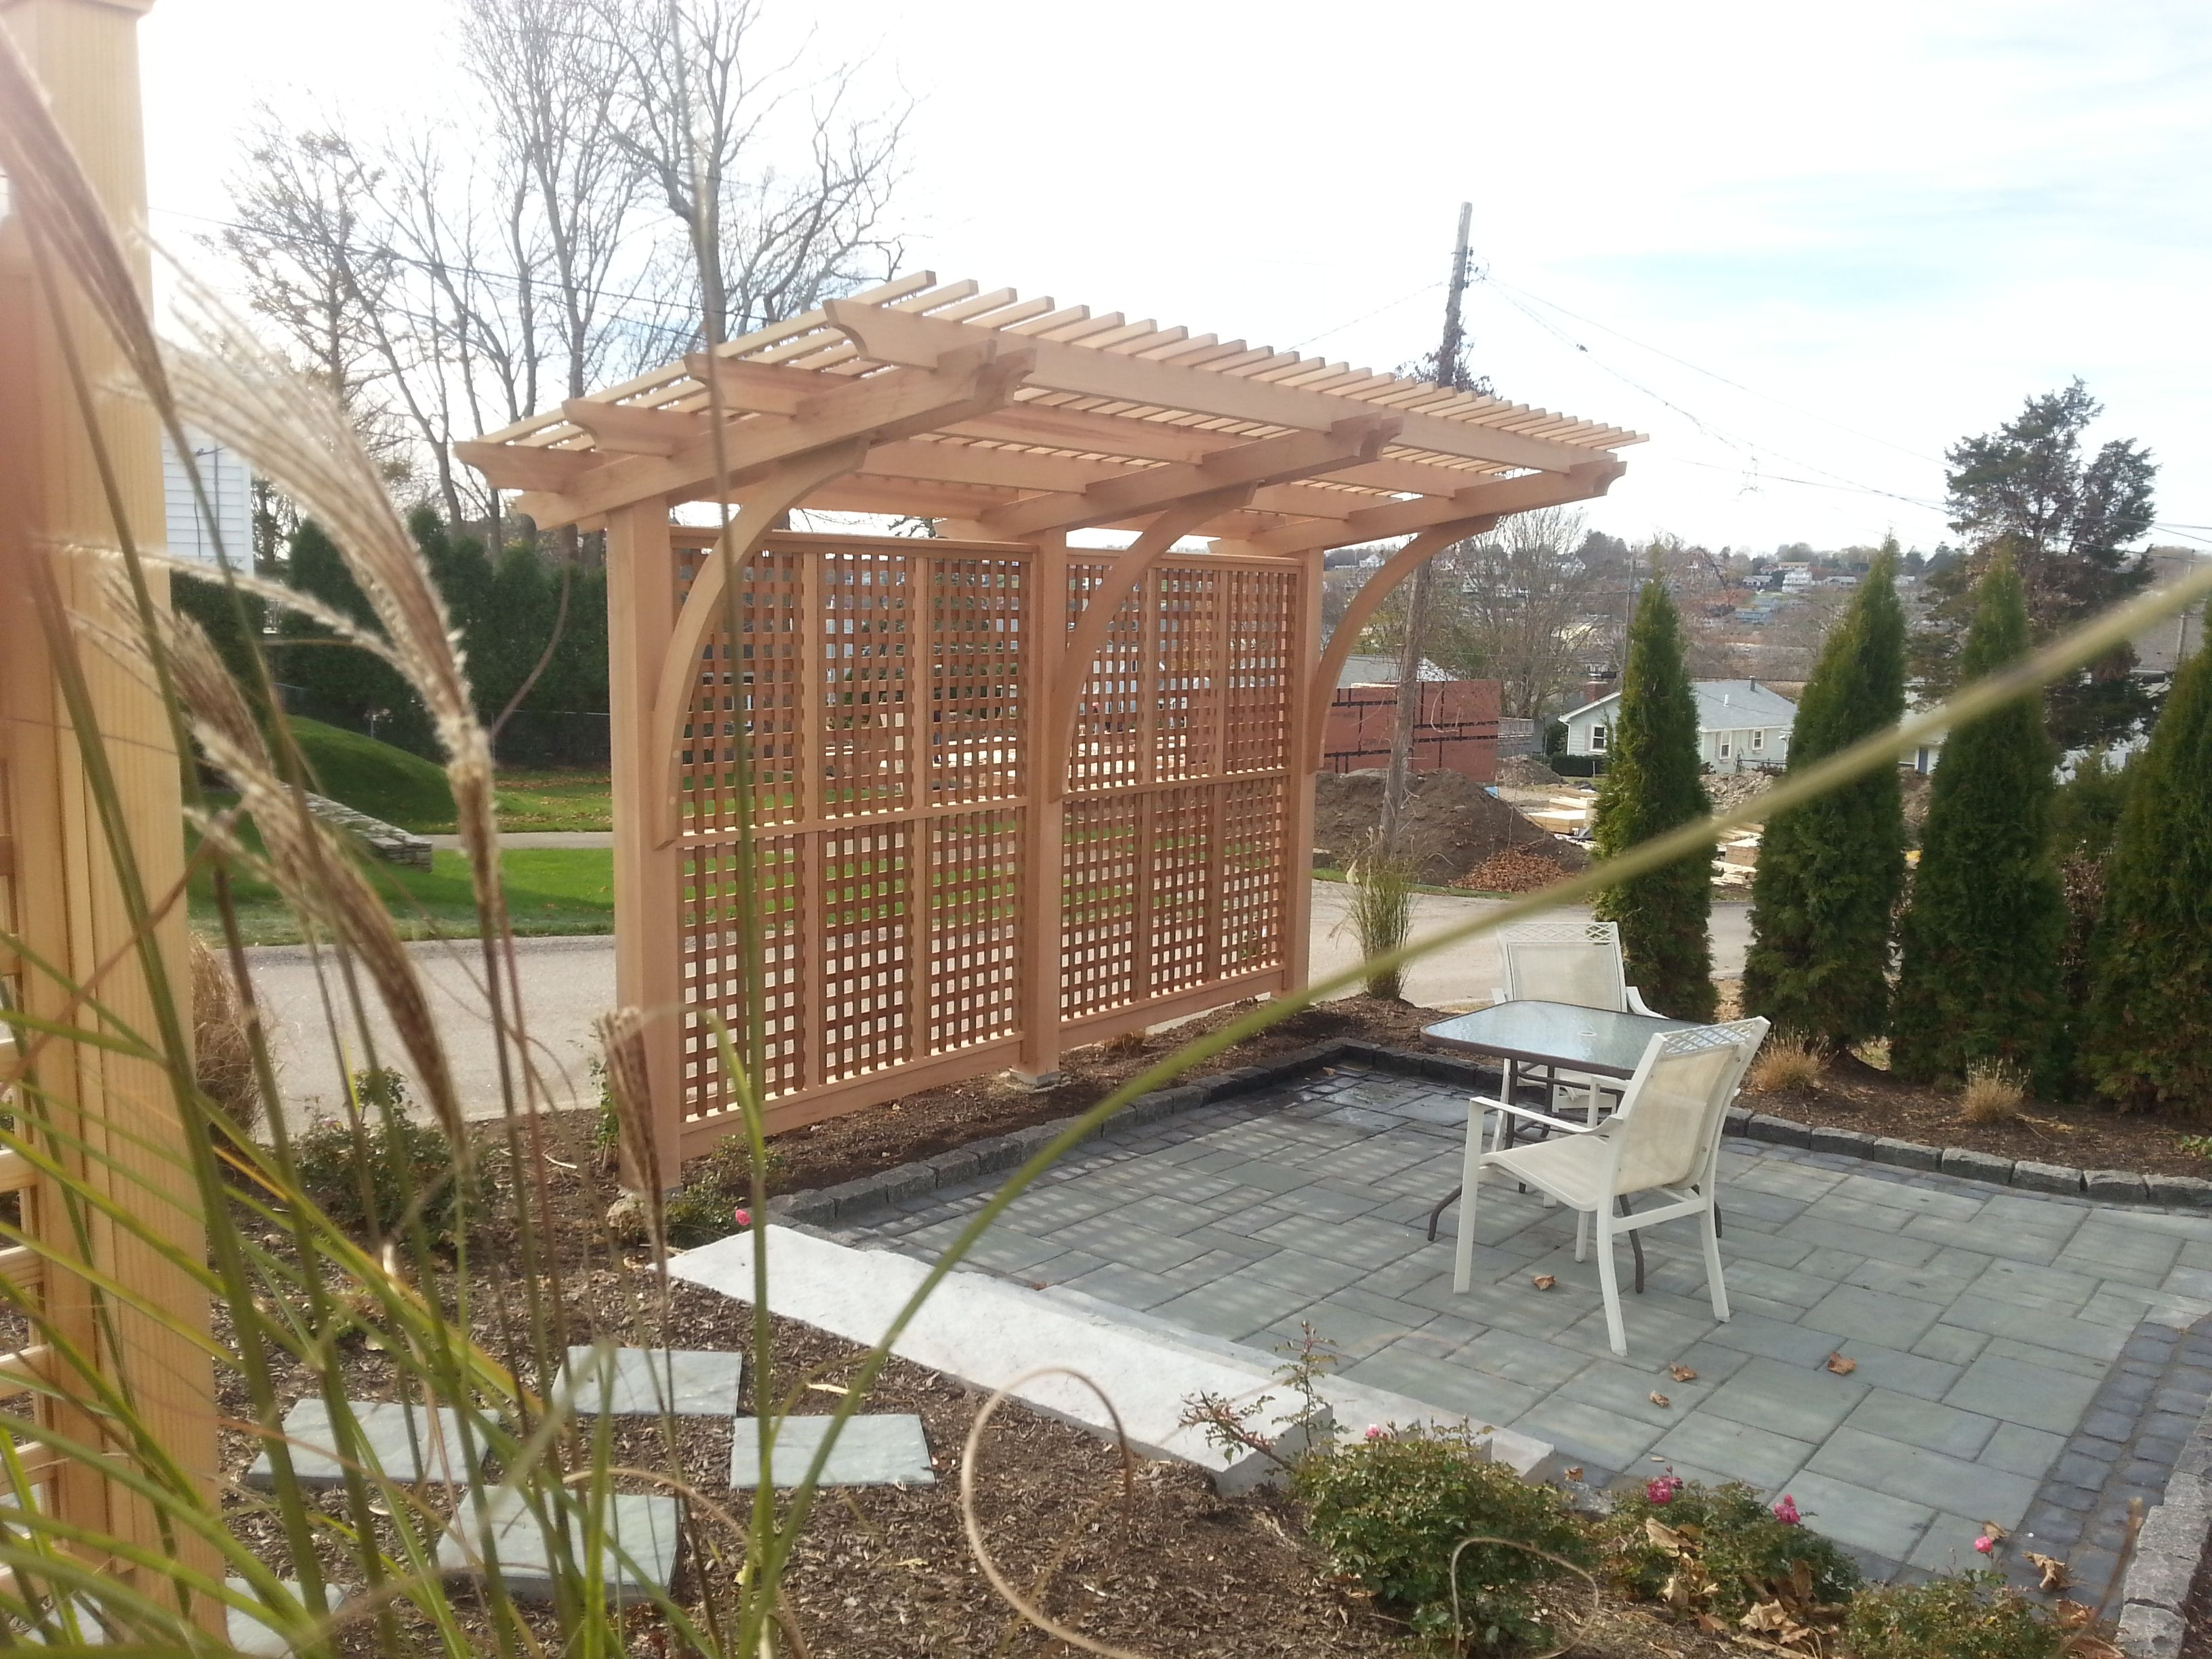 Ordinaire Cantilevered Pergola   Cedar Structure With Mahogany Lattice Work. Donu0027t  Really Dig The Lattice.